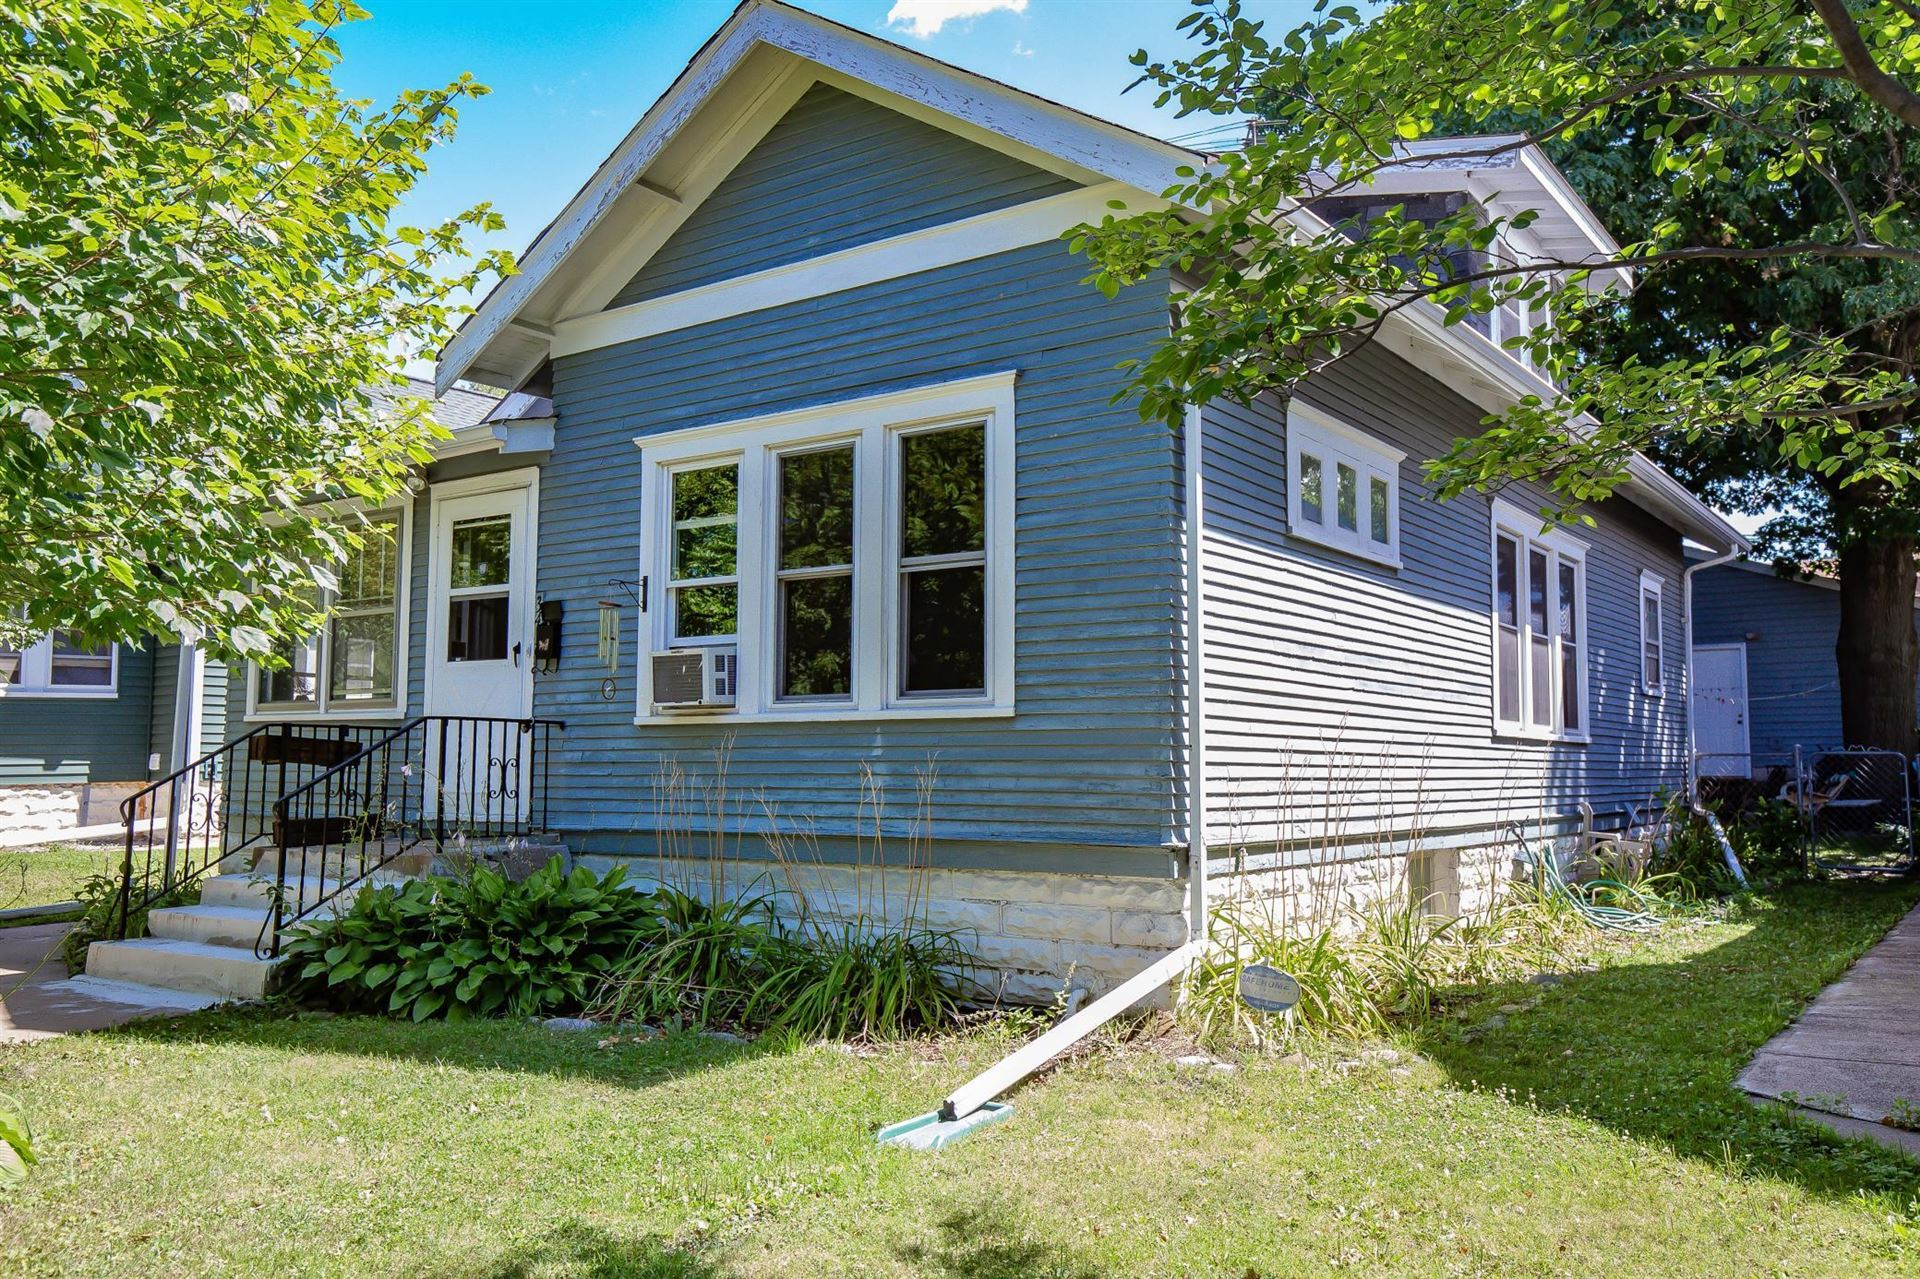 3430 Irving Avenue N, Minneapolis, MN 55412 - MLS#: 5640940